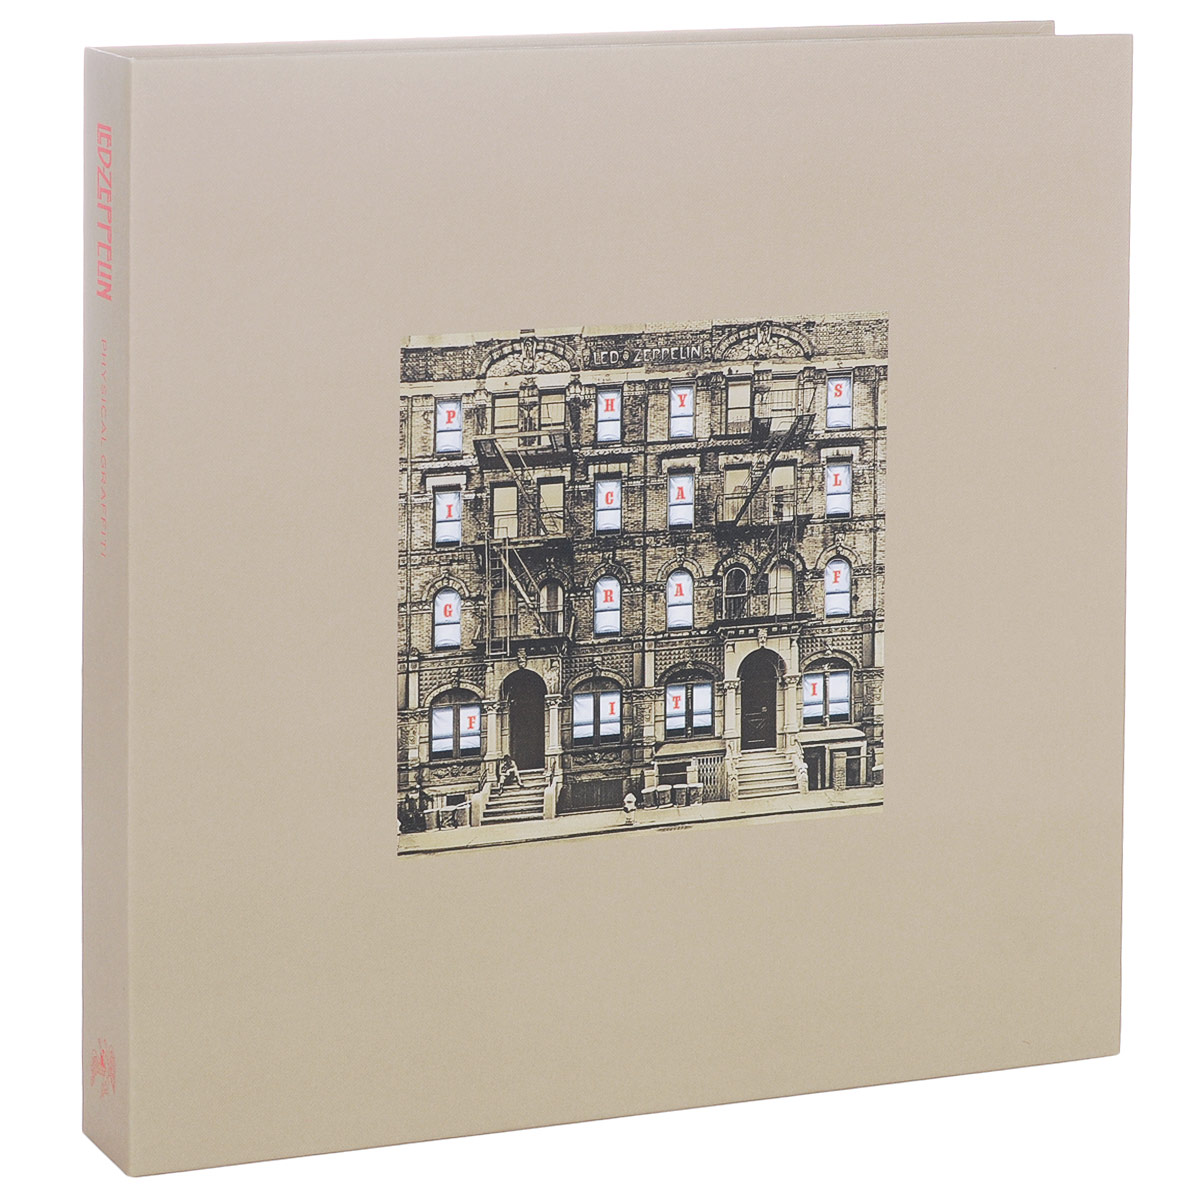 Led Zeppelin Led Zeppelin. Physical Graffiti. Super Deluxe Edition (3 CD + 3 LP) 1 3 cmos dome surveillance camera with 12 ir led night vision ntsc